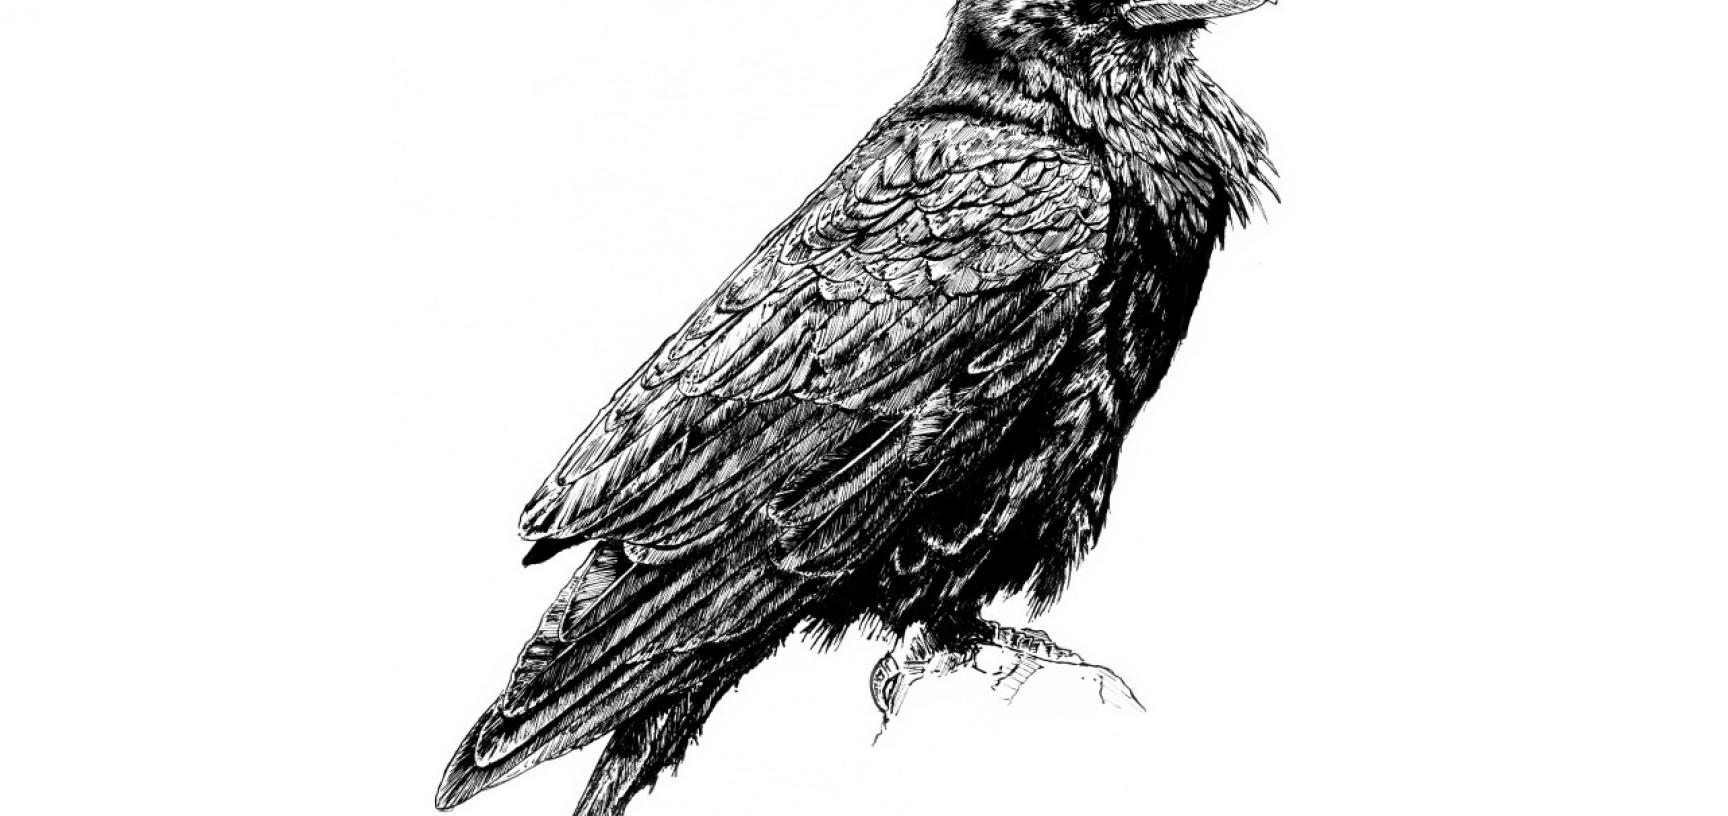 Raven by Mark Wright of Toadink